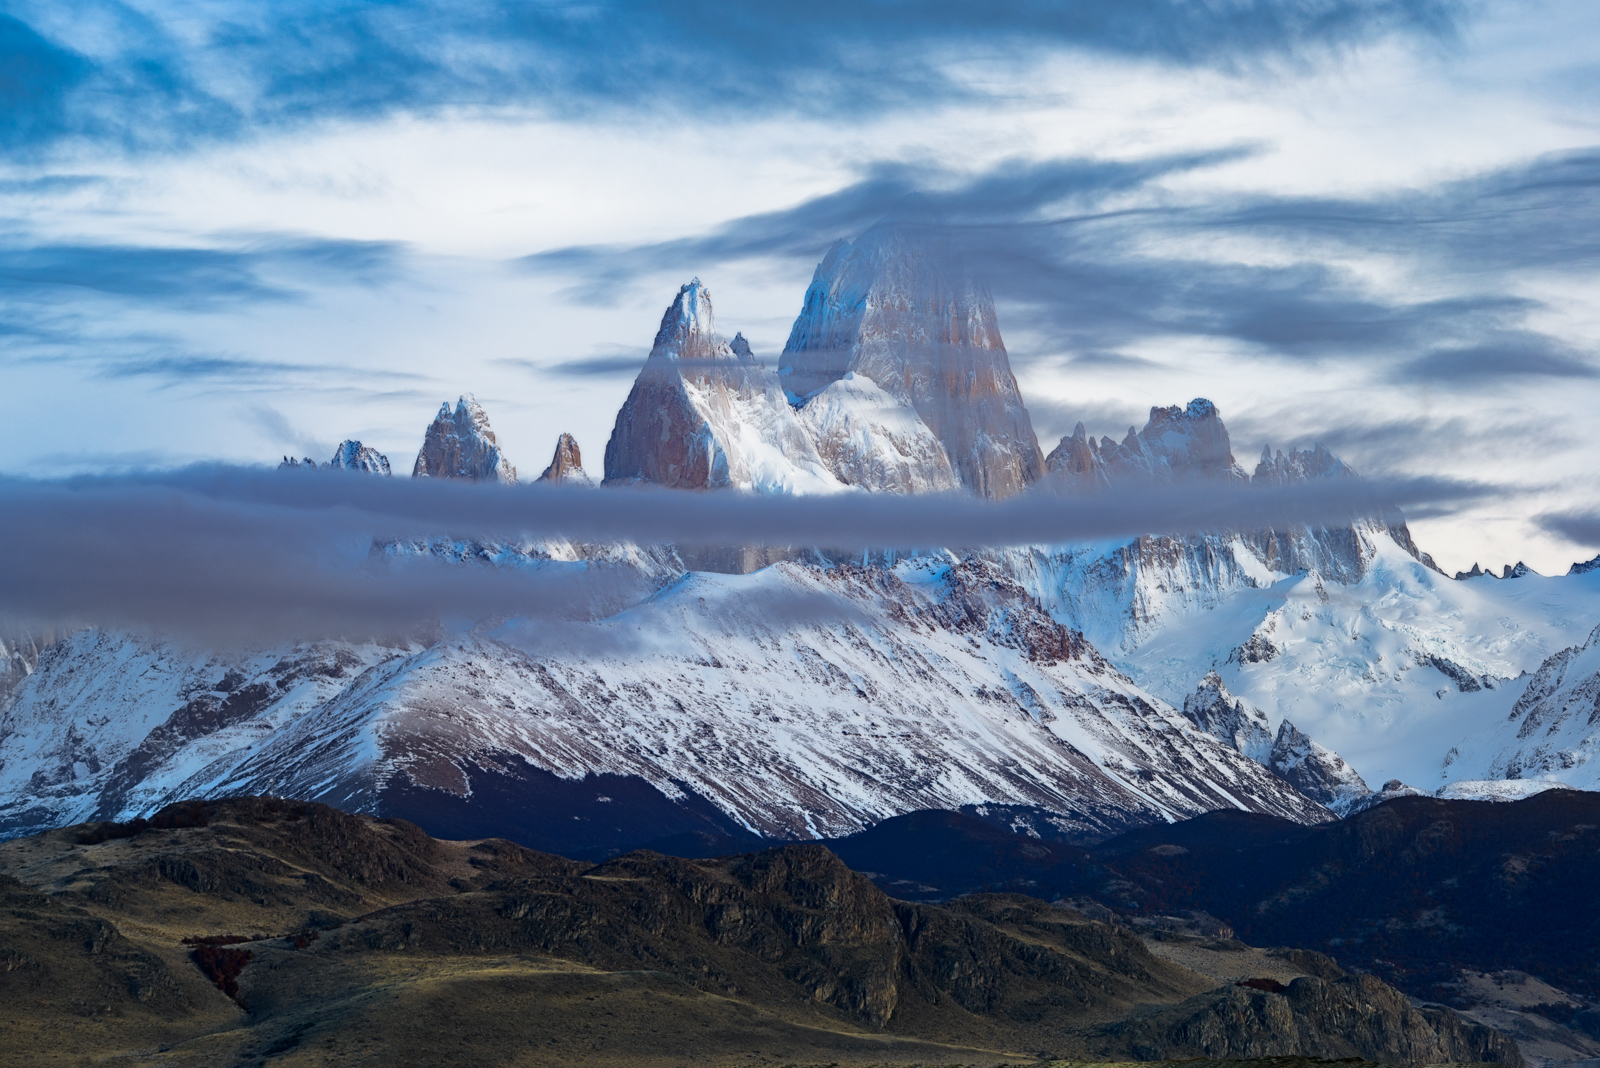 Mount Fitz Roy and clearing storm clouds, Patagonia, Argentina.